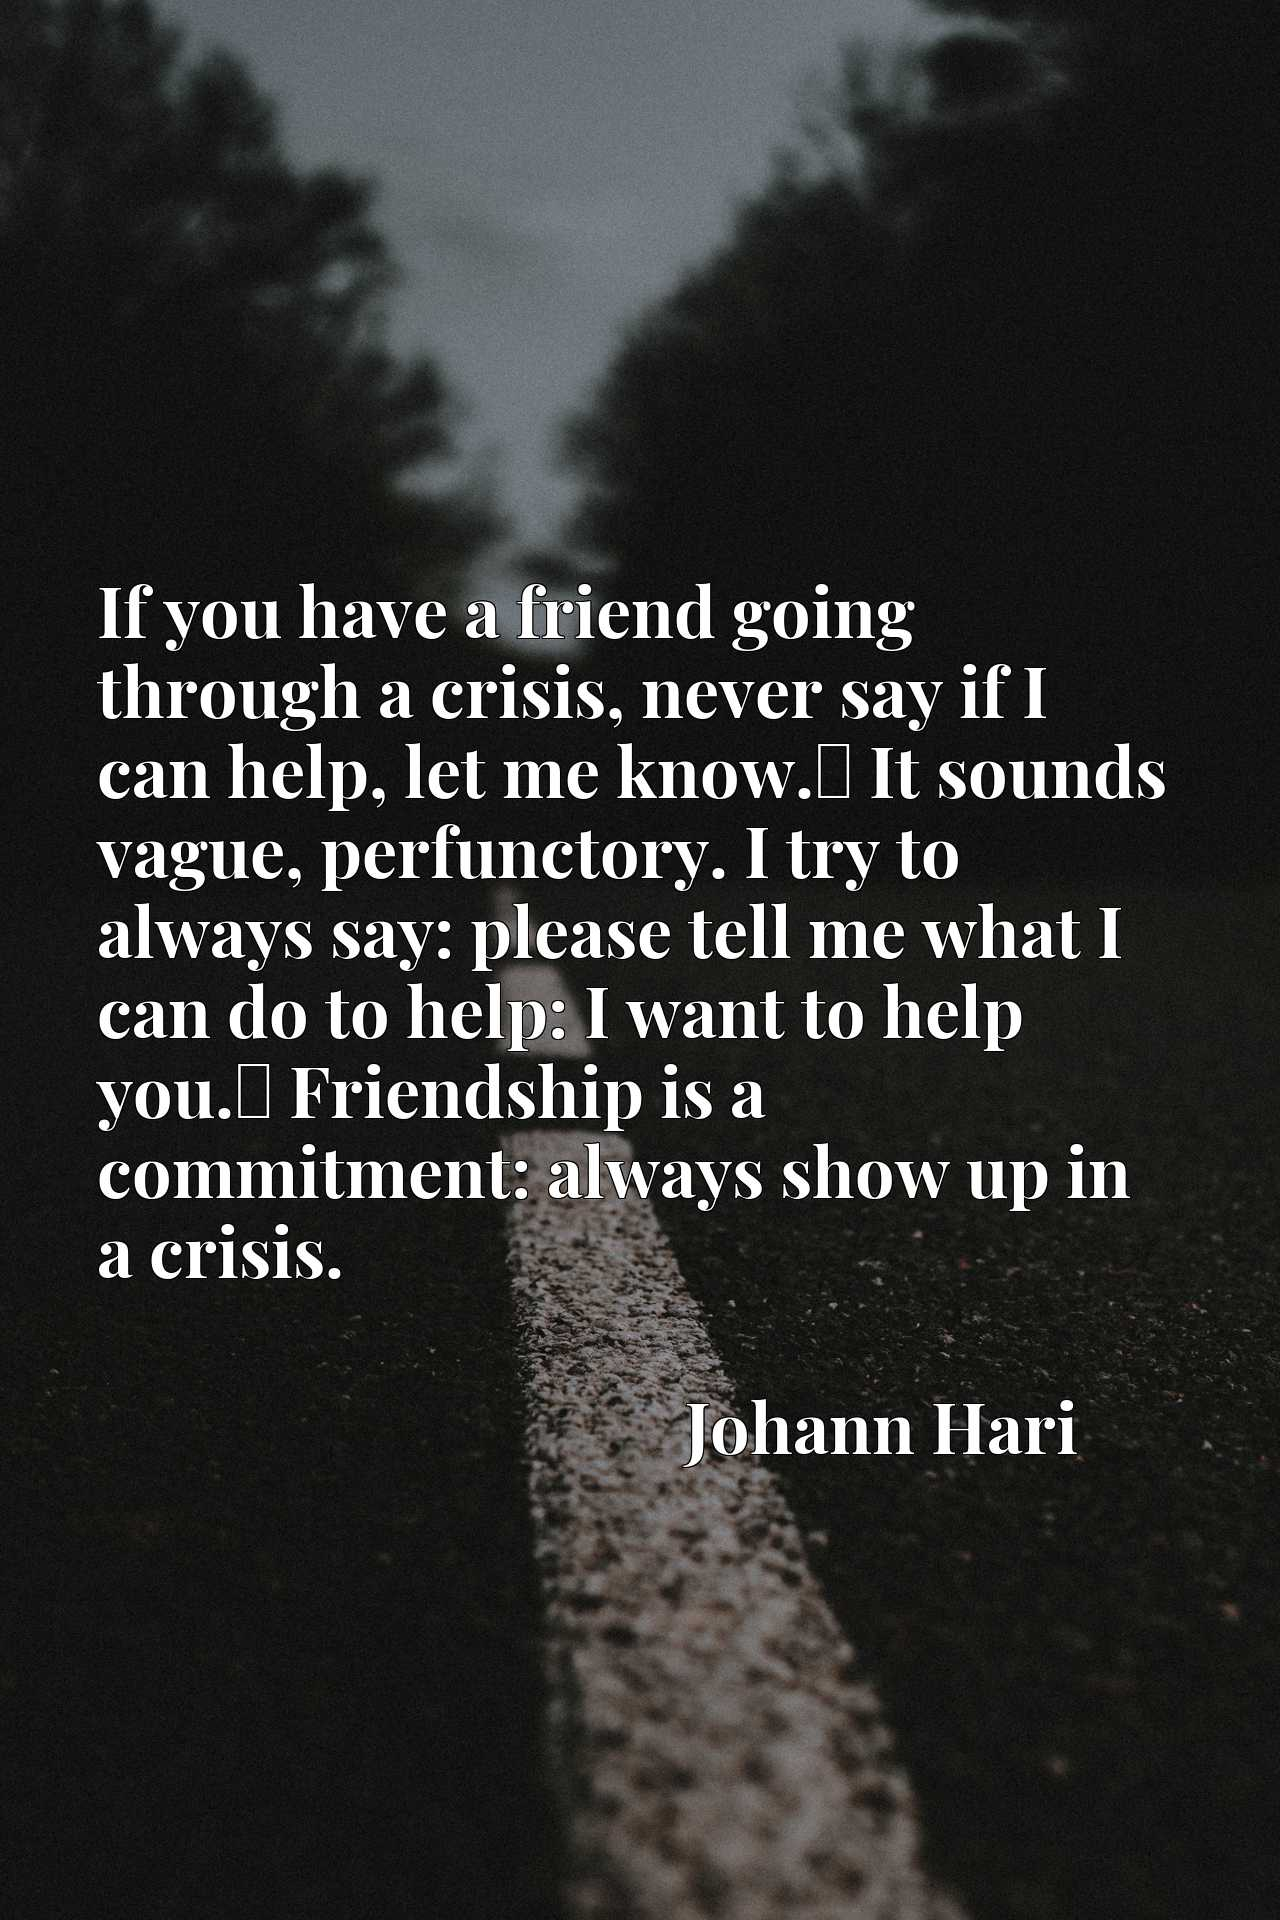 If you have a friend going through a crisis, never say if I can help, let me know.x9d It sounds vague, perfunctory. I try to always say: please tell me what I can do to help: I want to help you.x9d Friendship is a commitment: always show up in a crisis.